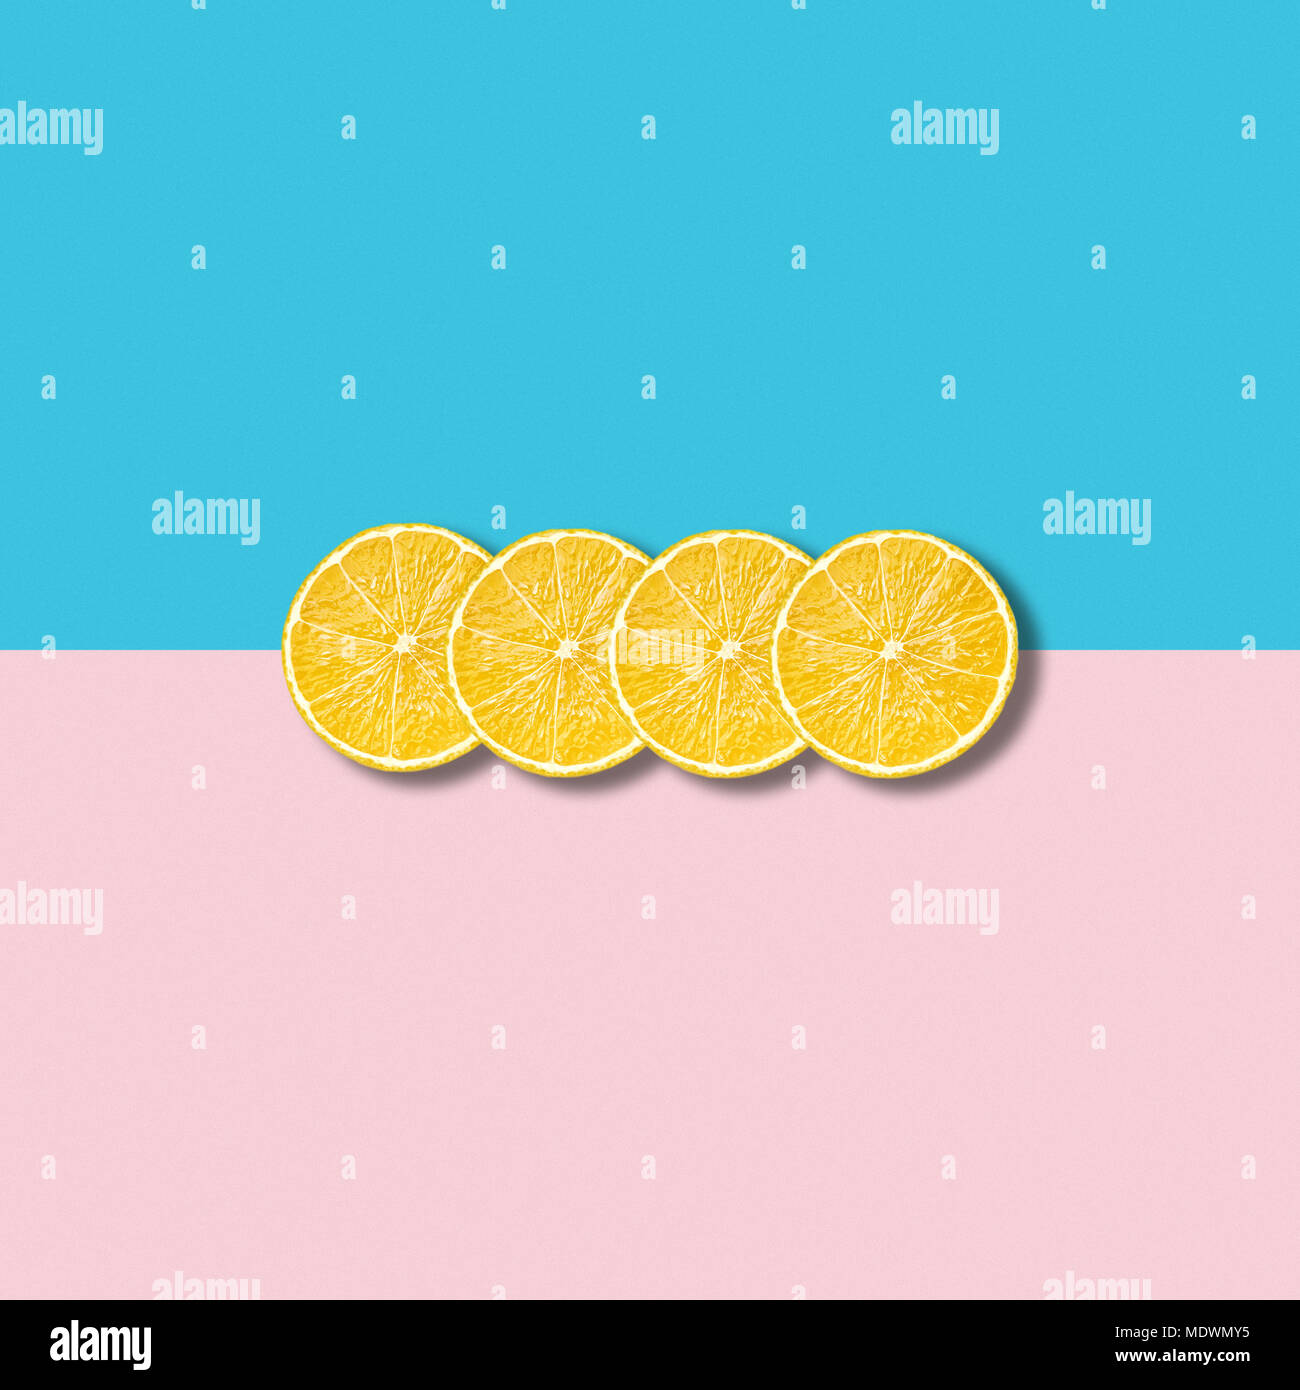 Minimal abstract illustration with group of lemon slices on pastel pink and turquoise background - Stock Image